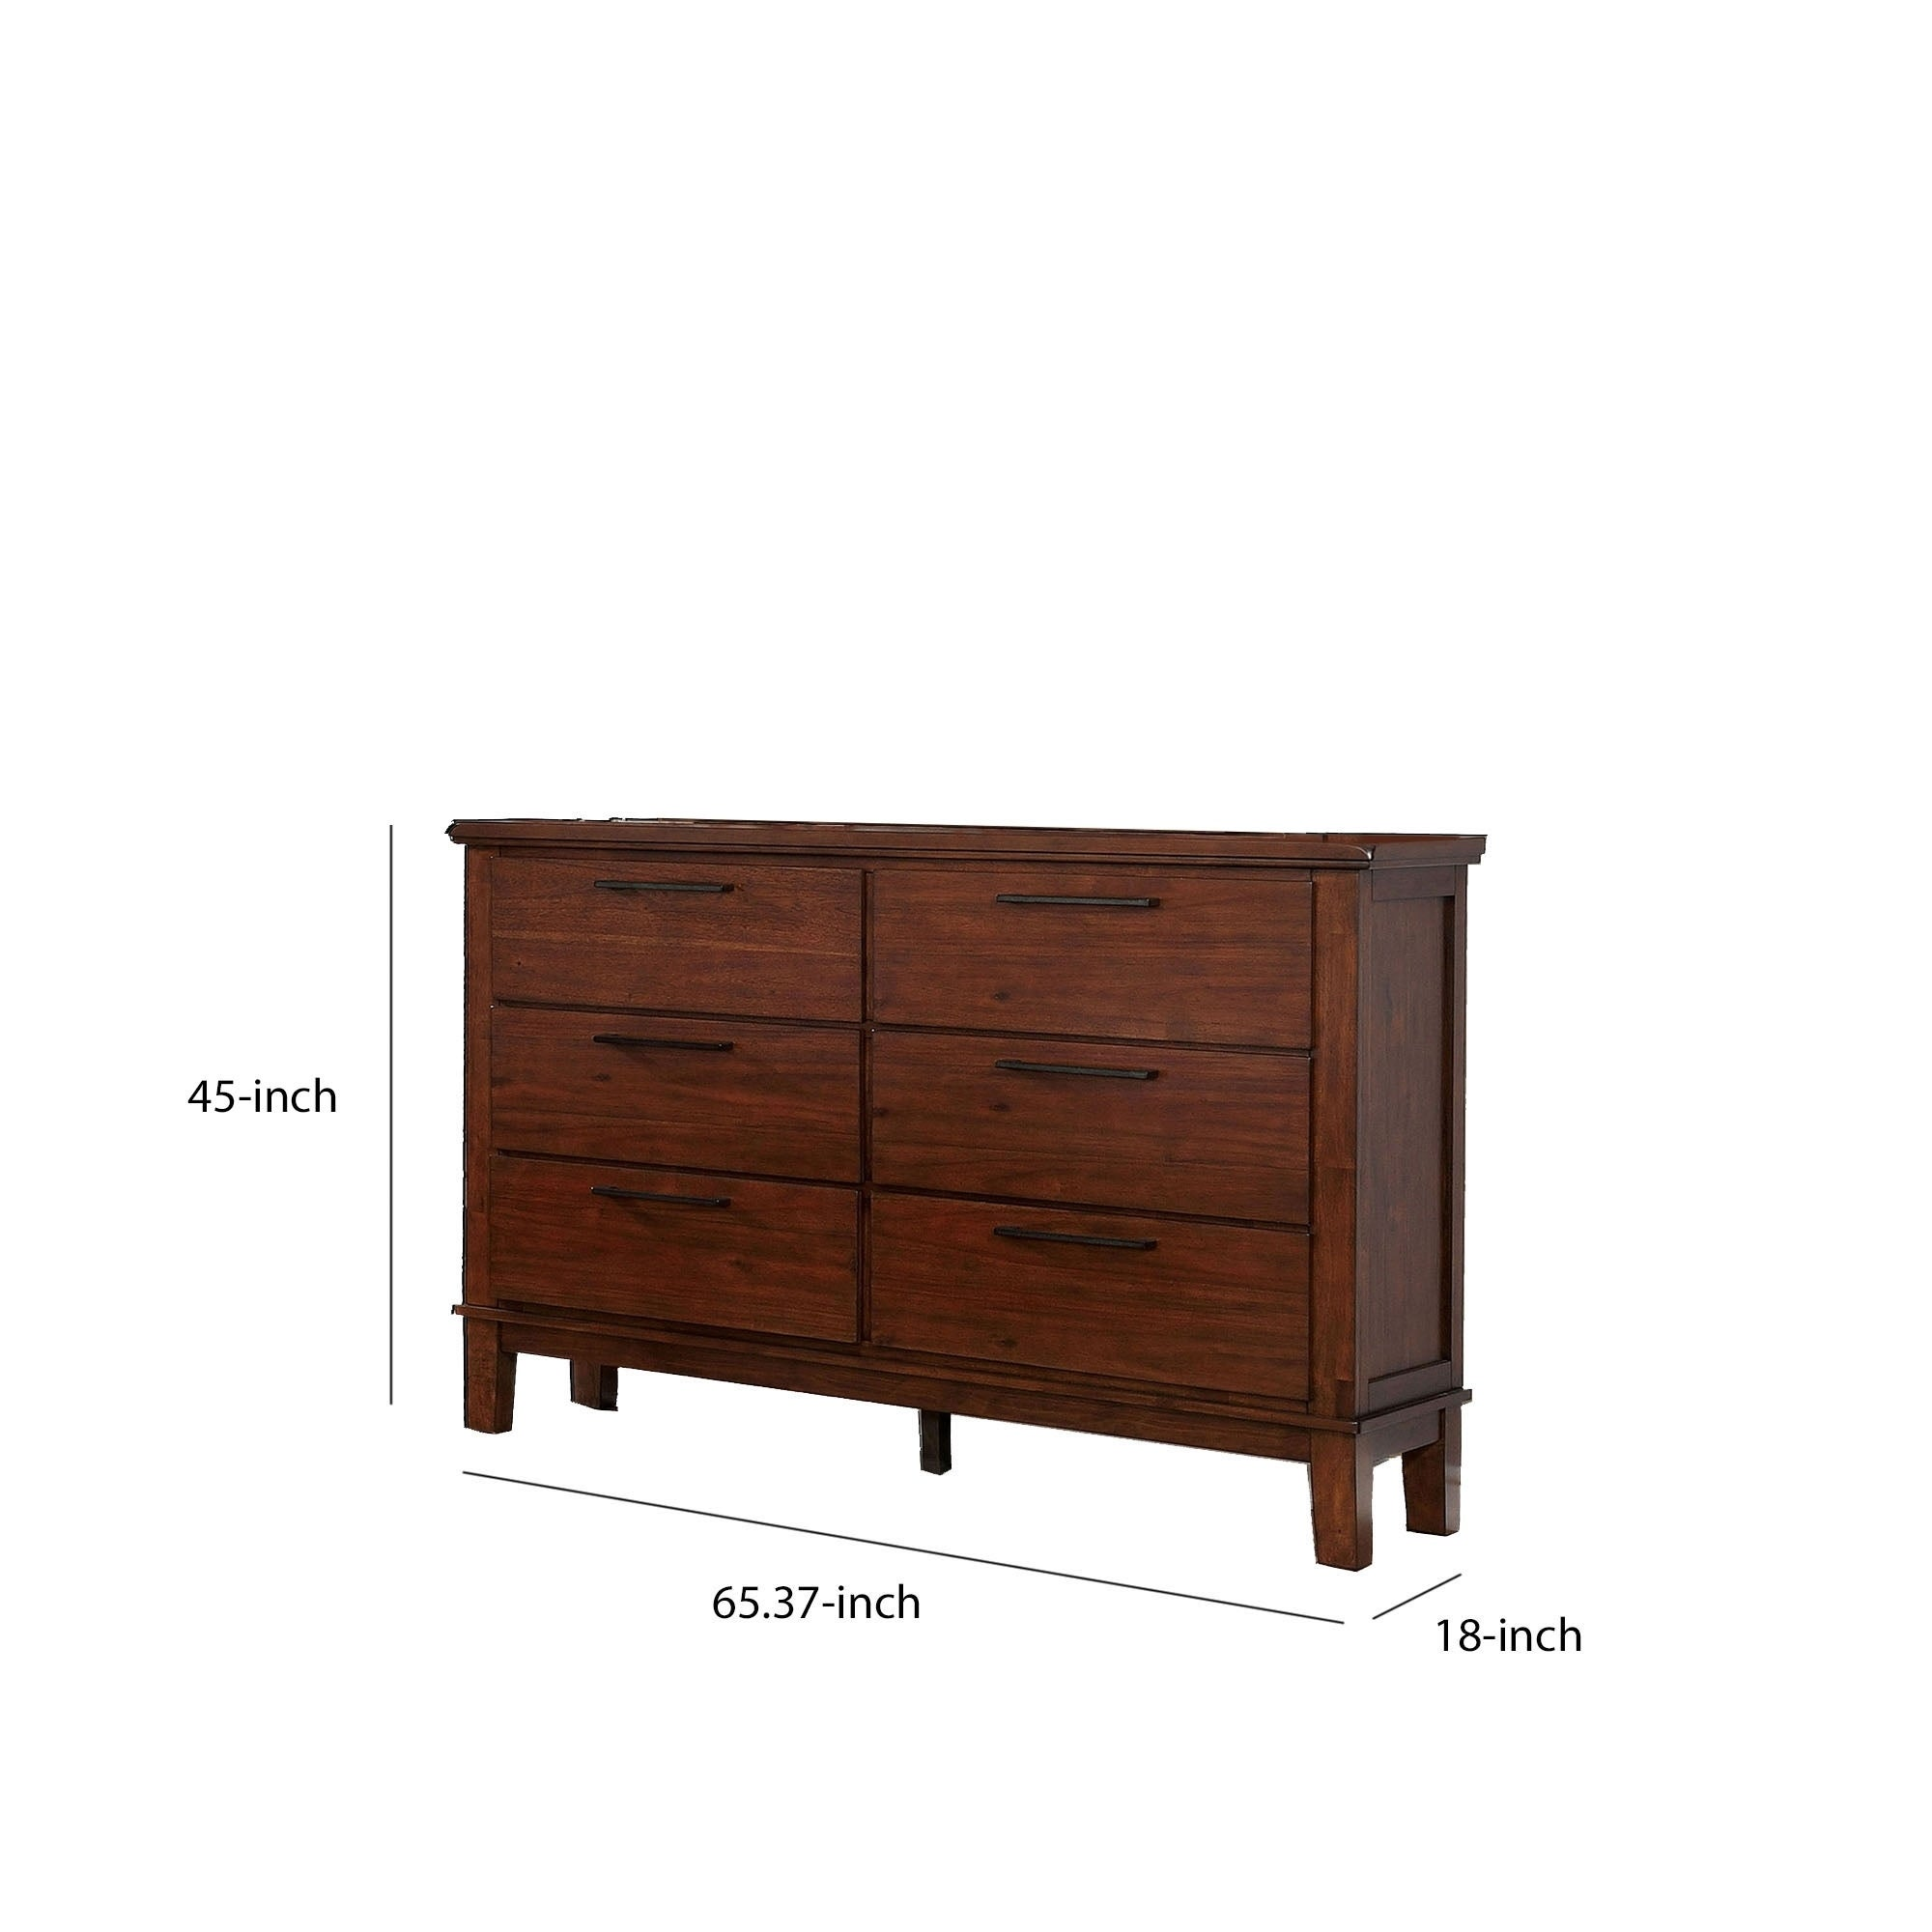 Picture of: Shop Wood And Metal Dresser With 6 Drawers Cherry Brown And Black Overstock 29800493